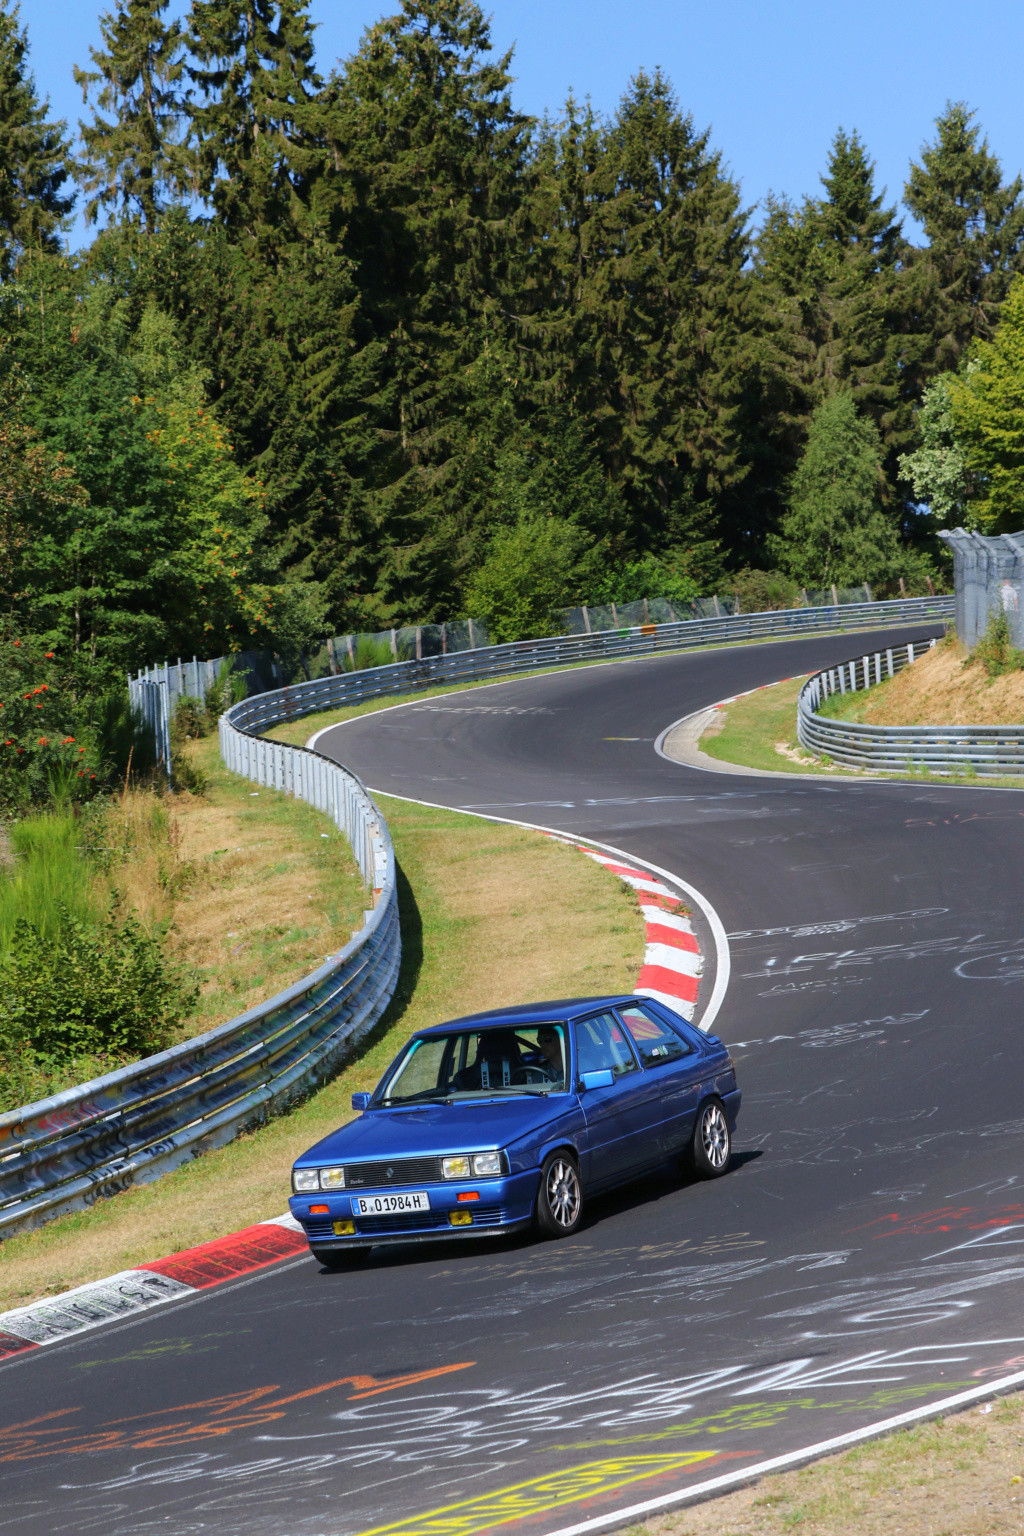 Renault 11 1.8 16v TURBO - Berlin tuning style - Page 4 Ring_a12